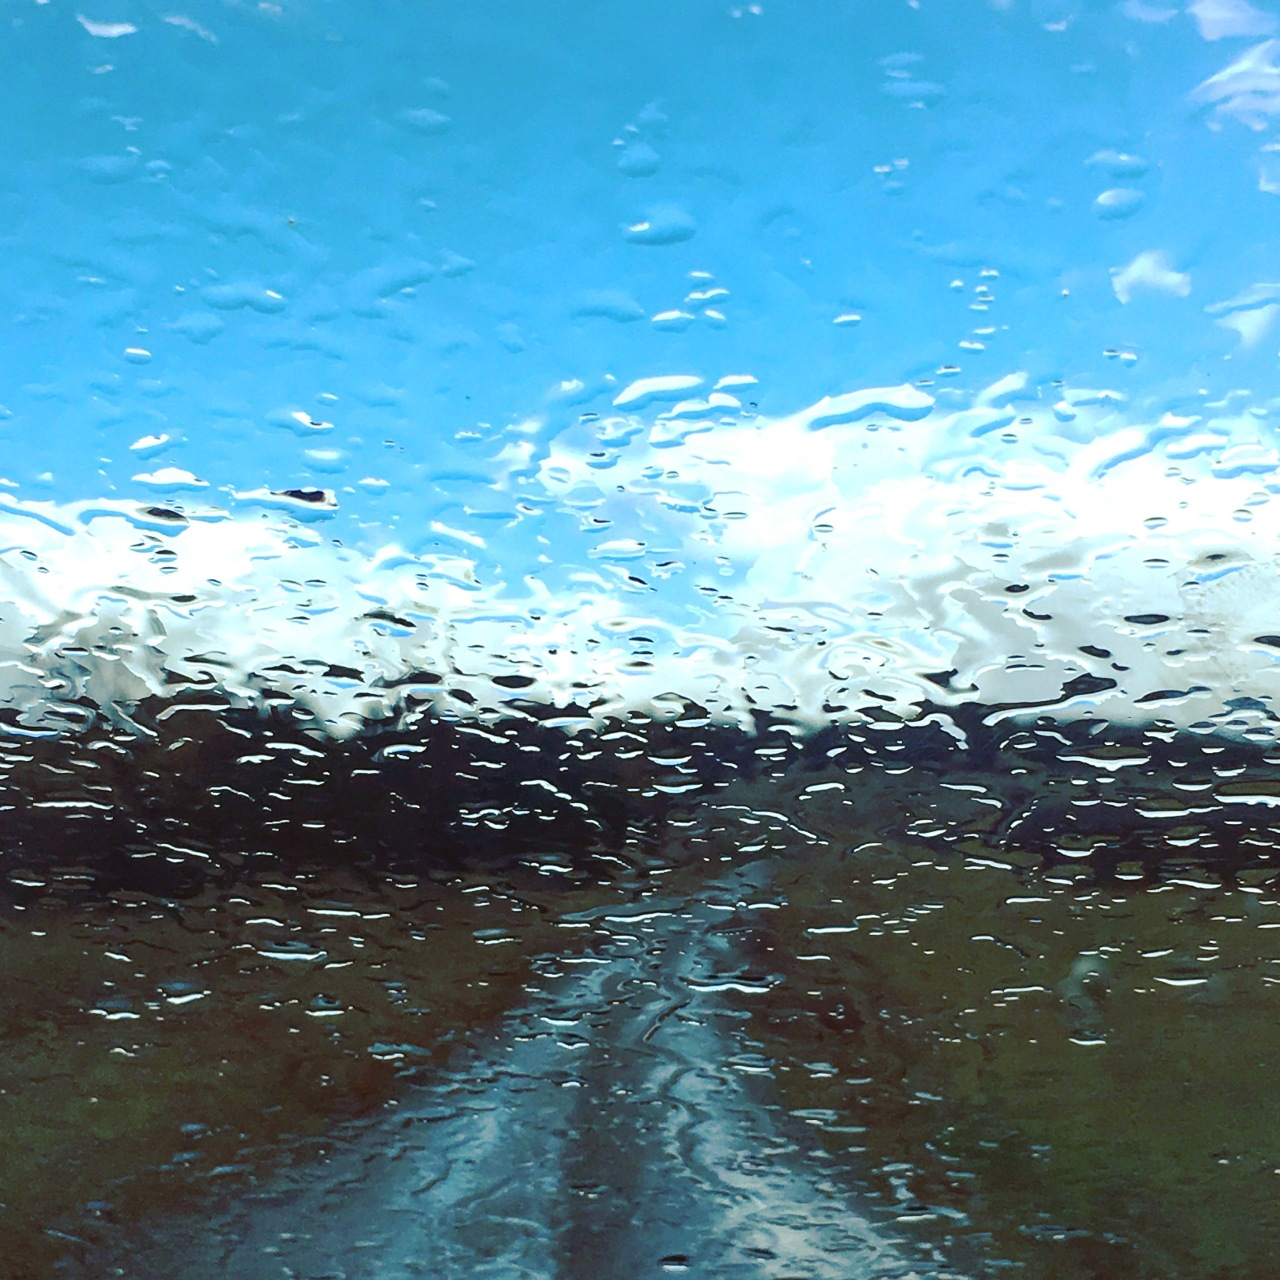 Winter, raindrops and blue sky